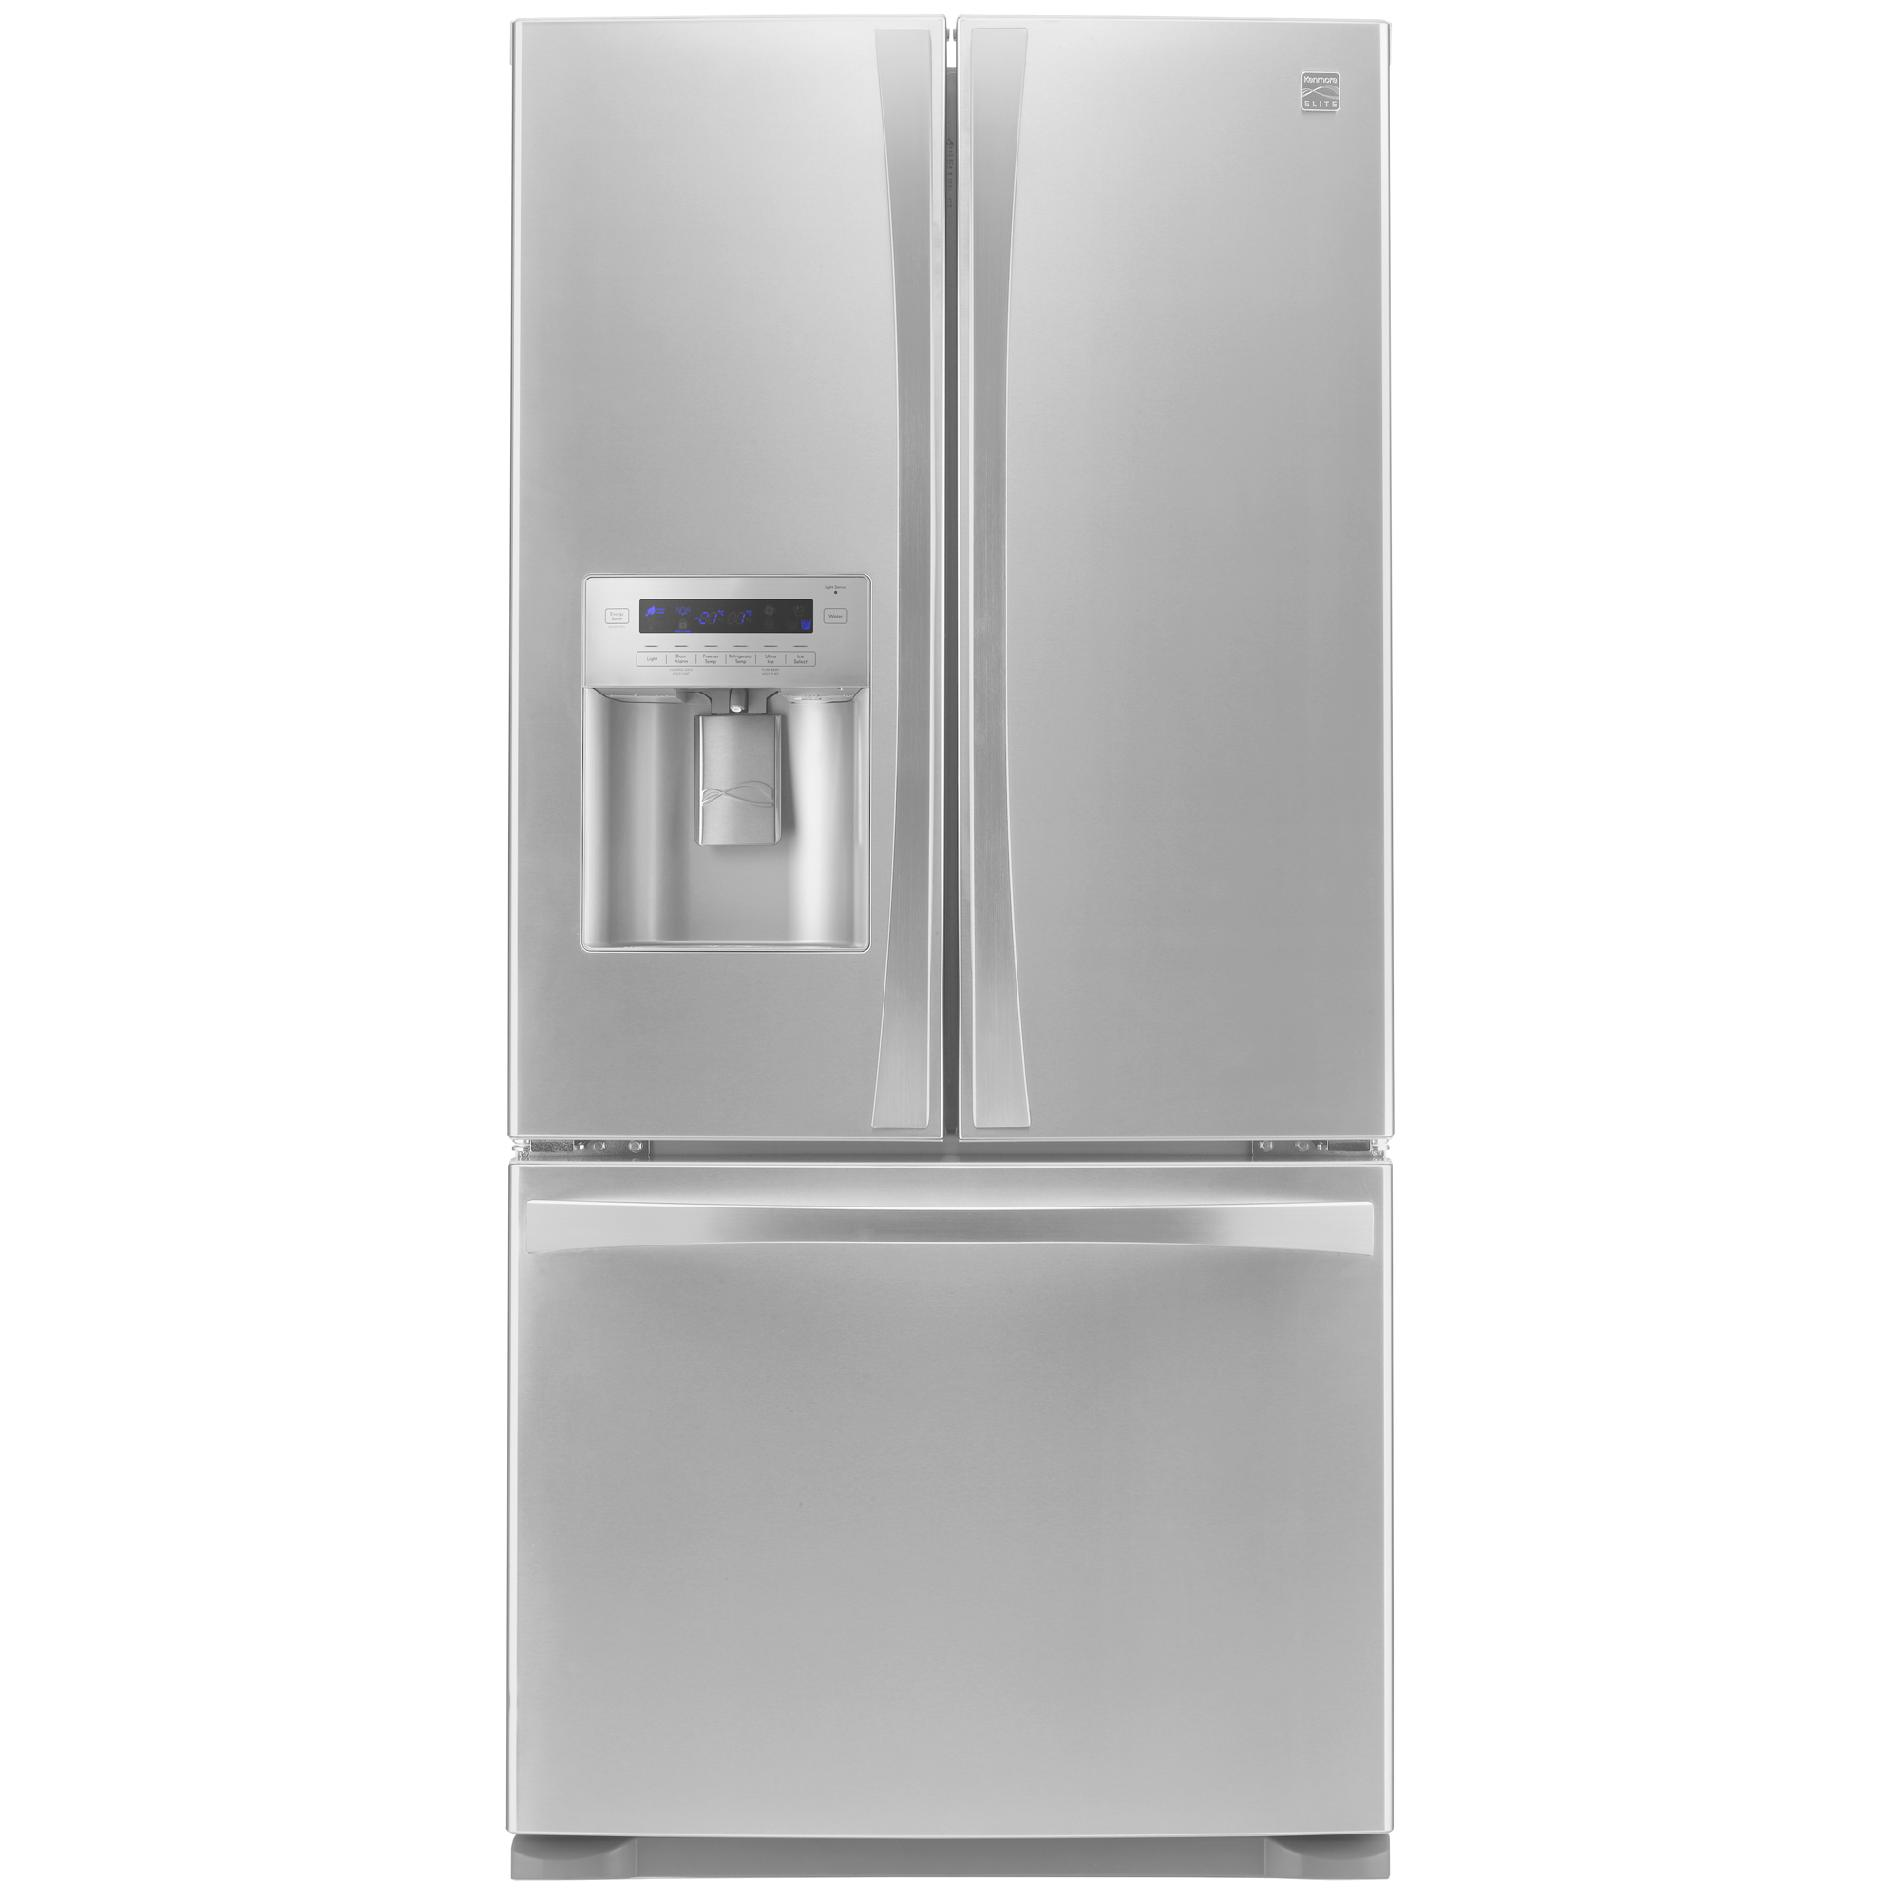 73133-24-2-cu-ft-French-Door-Bottom-Freezer-Refrigerator